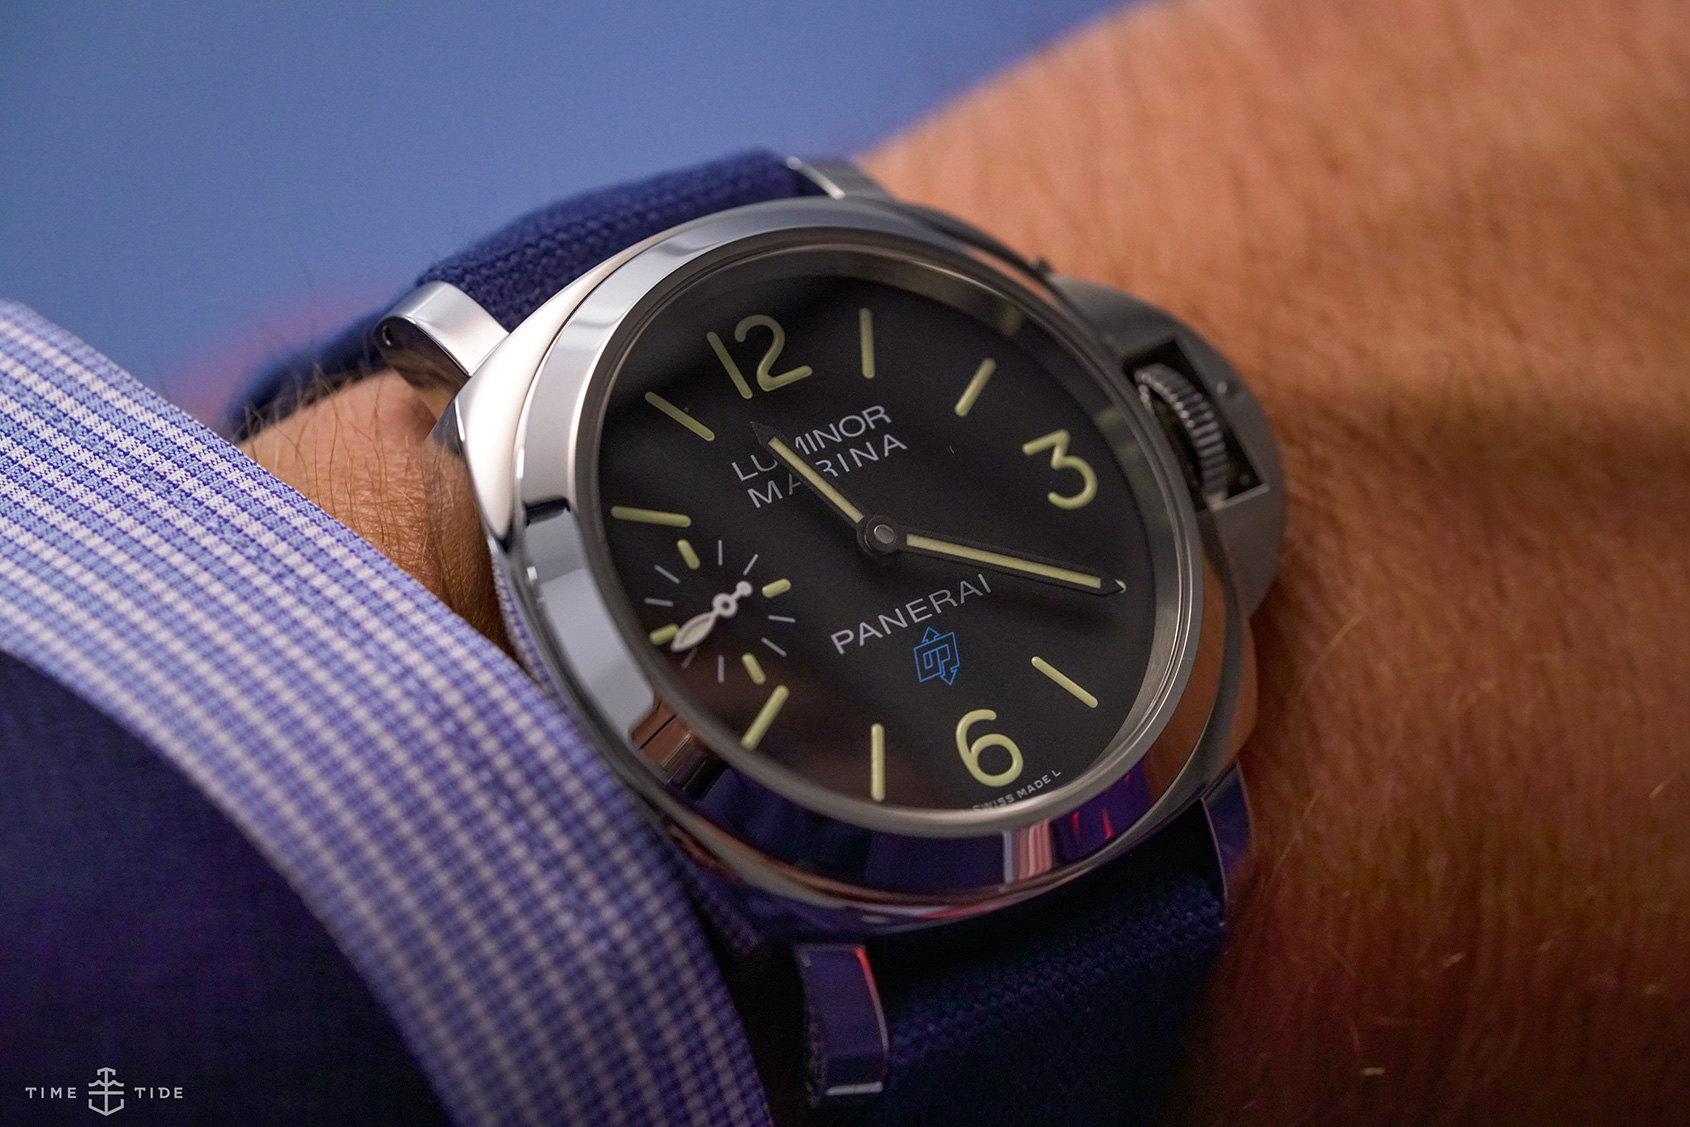 6 of the best everyday watch options from from $1000 – $11,000, starring Rolex, Longines and IWC